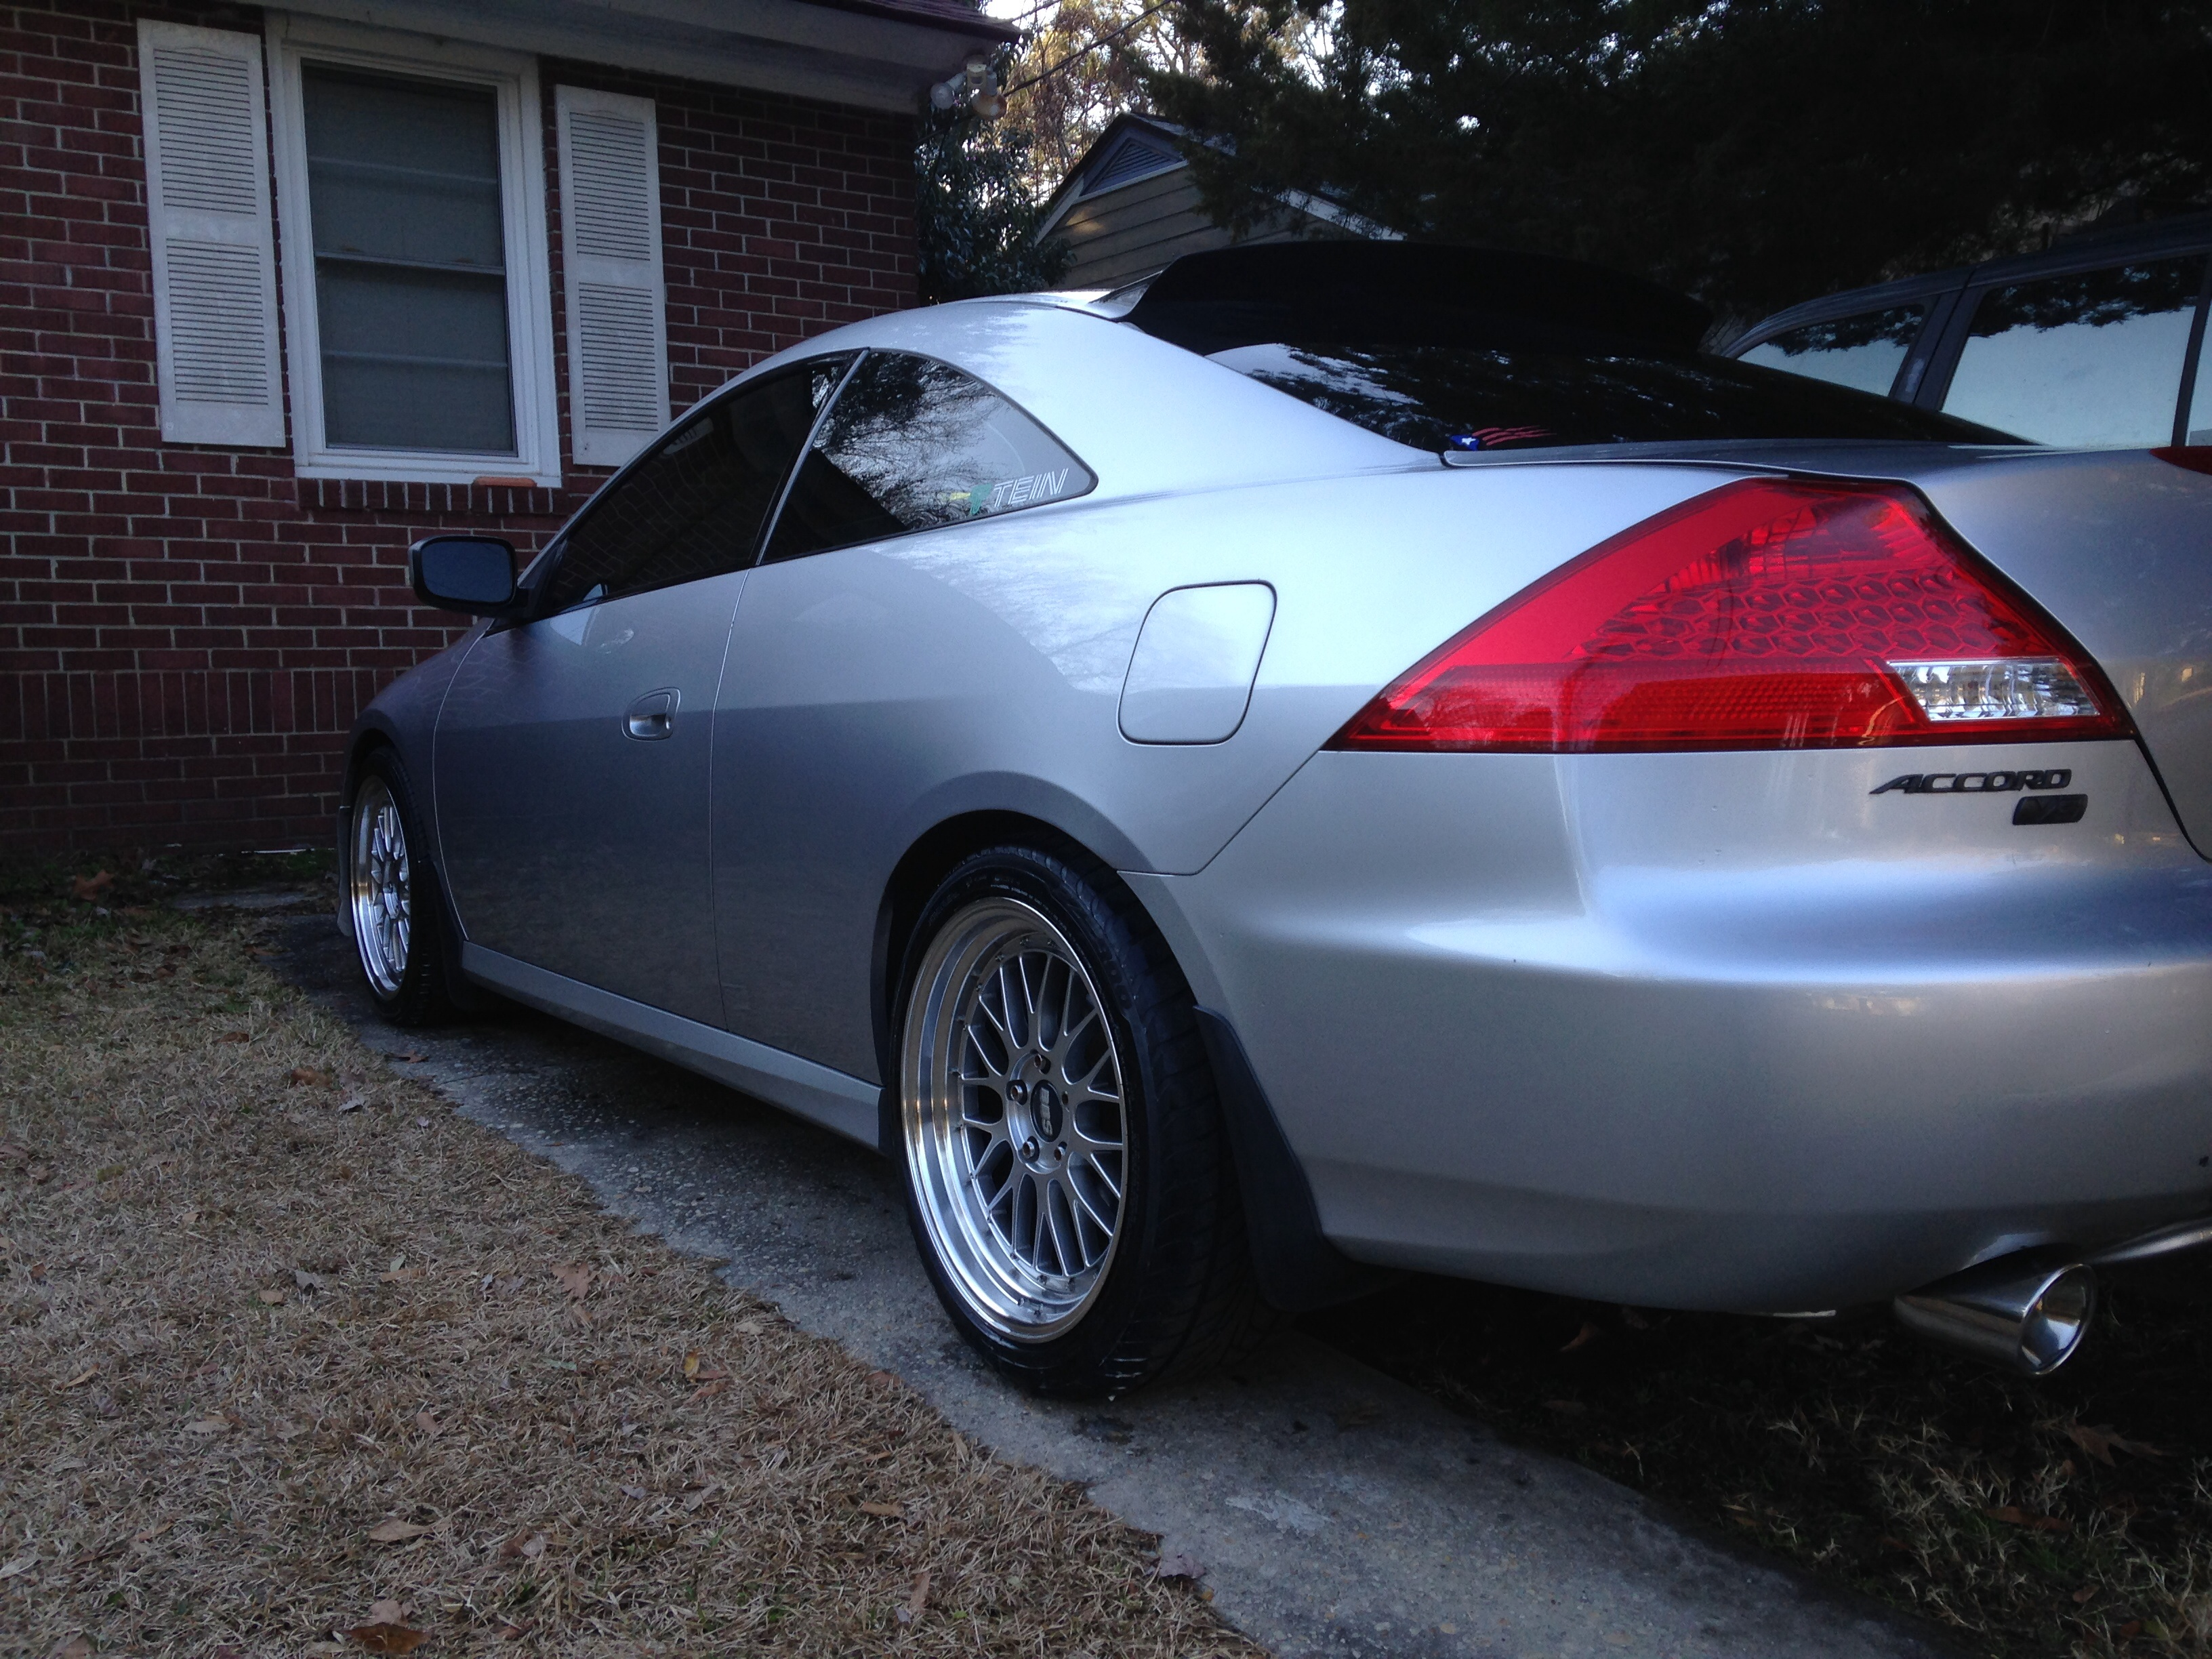 nuyorican2006's 2006 Honda Accord